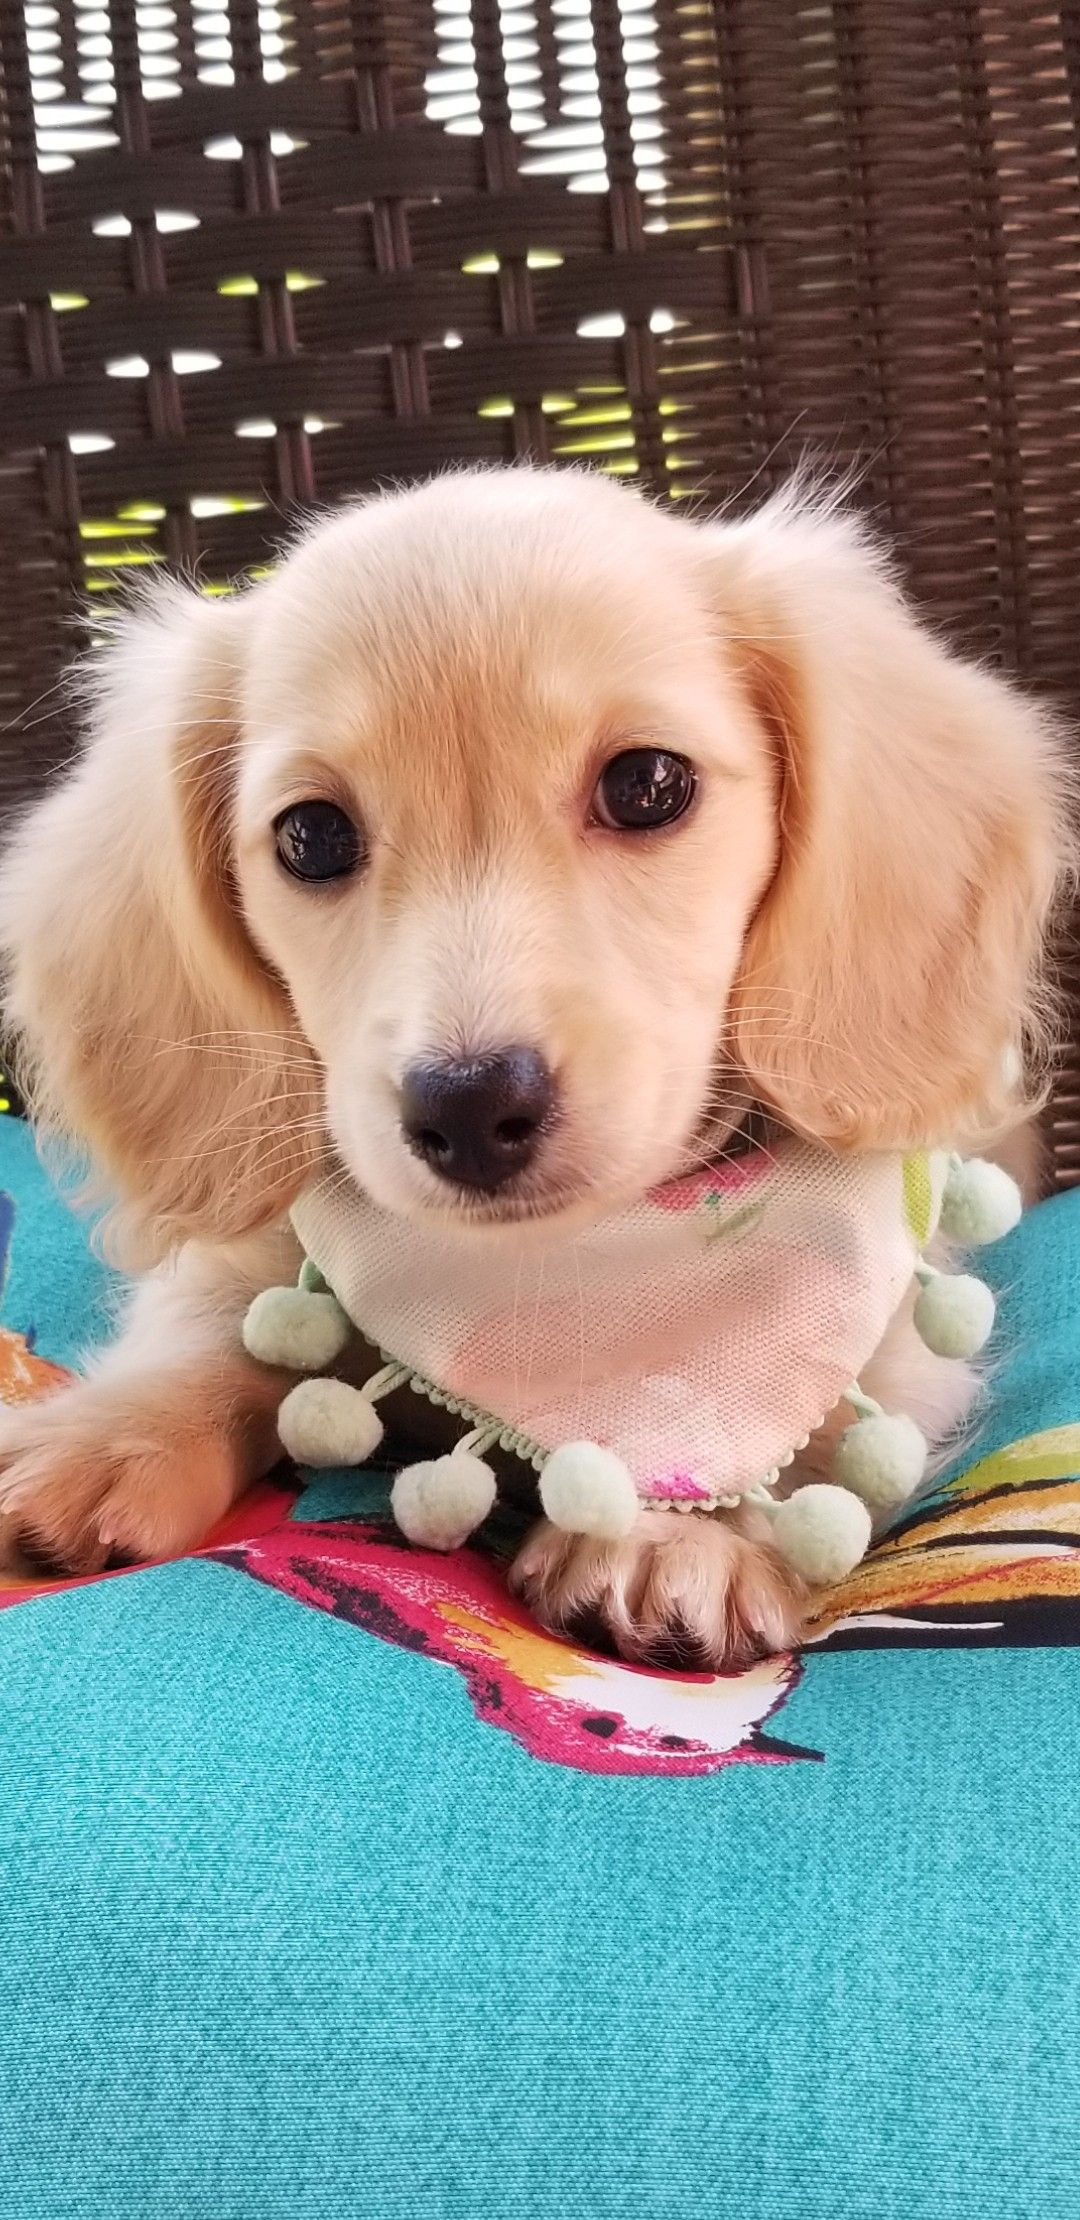 Miniature Longhaired English Cream Dachshund Puppy! Our